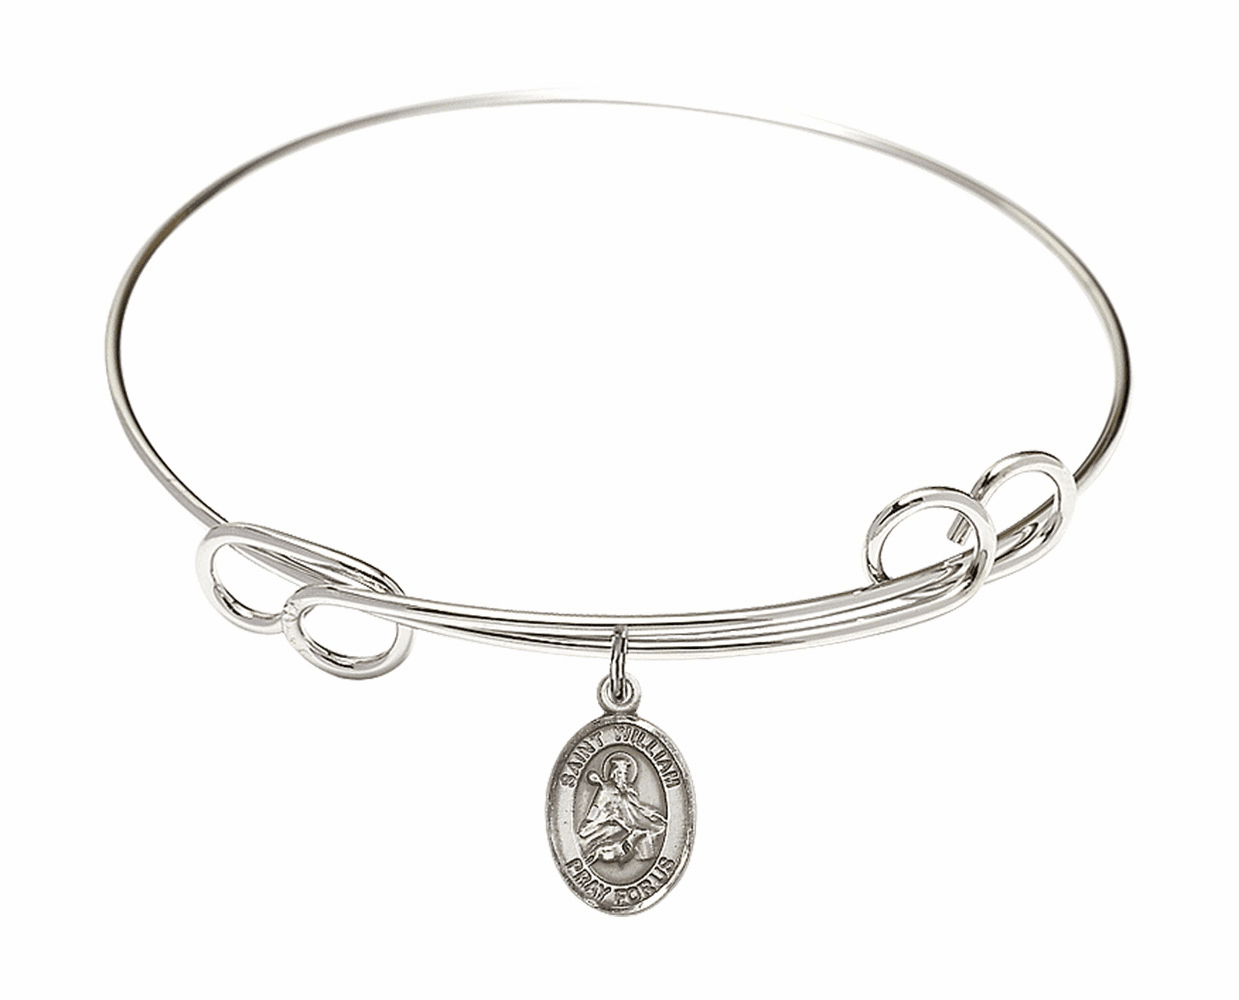 Round Loop St William of Rochester Bangle Charm Bracelet by Bliss